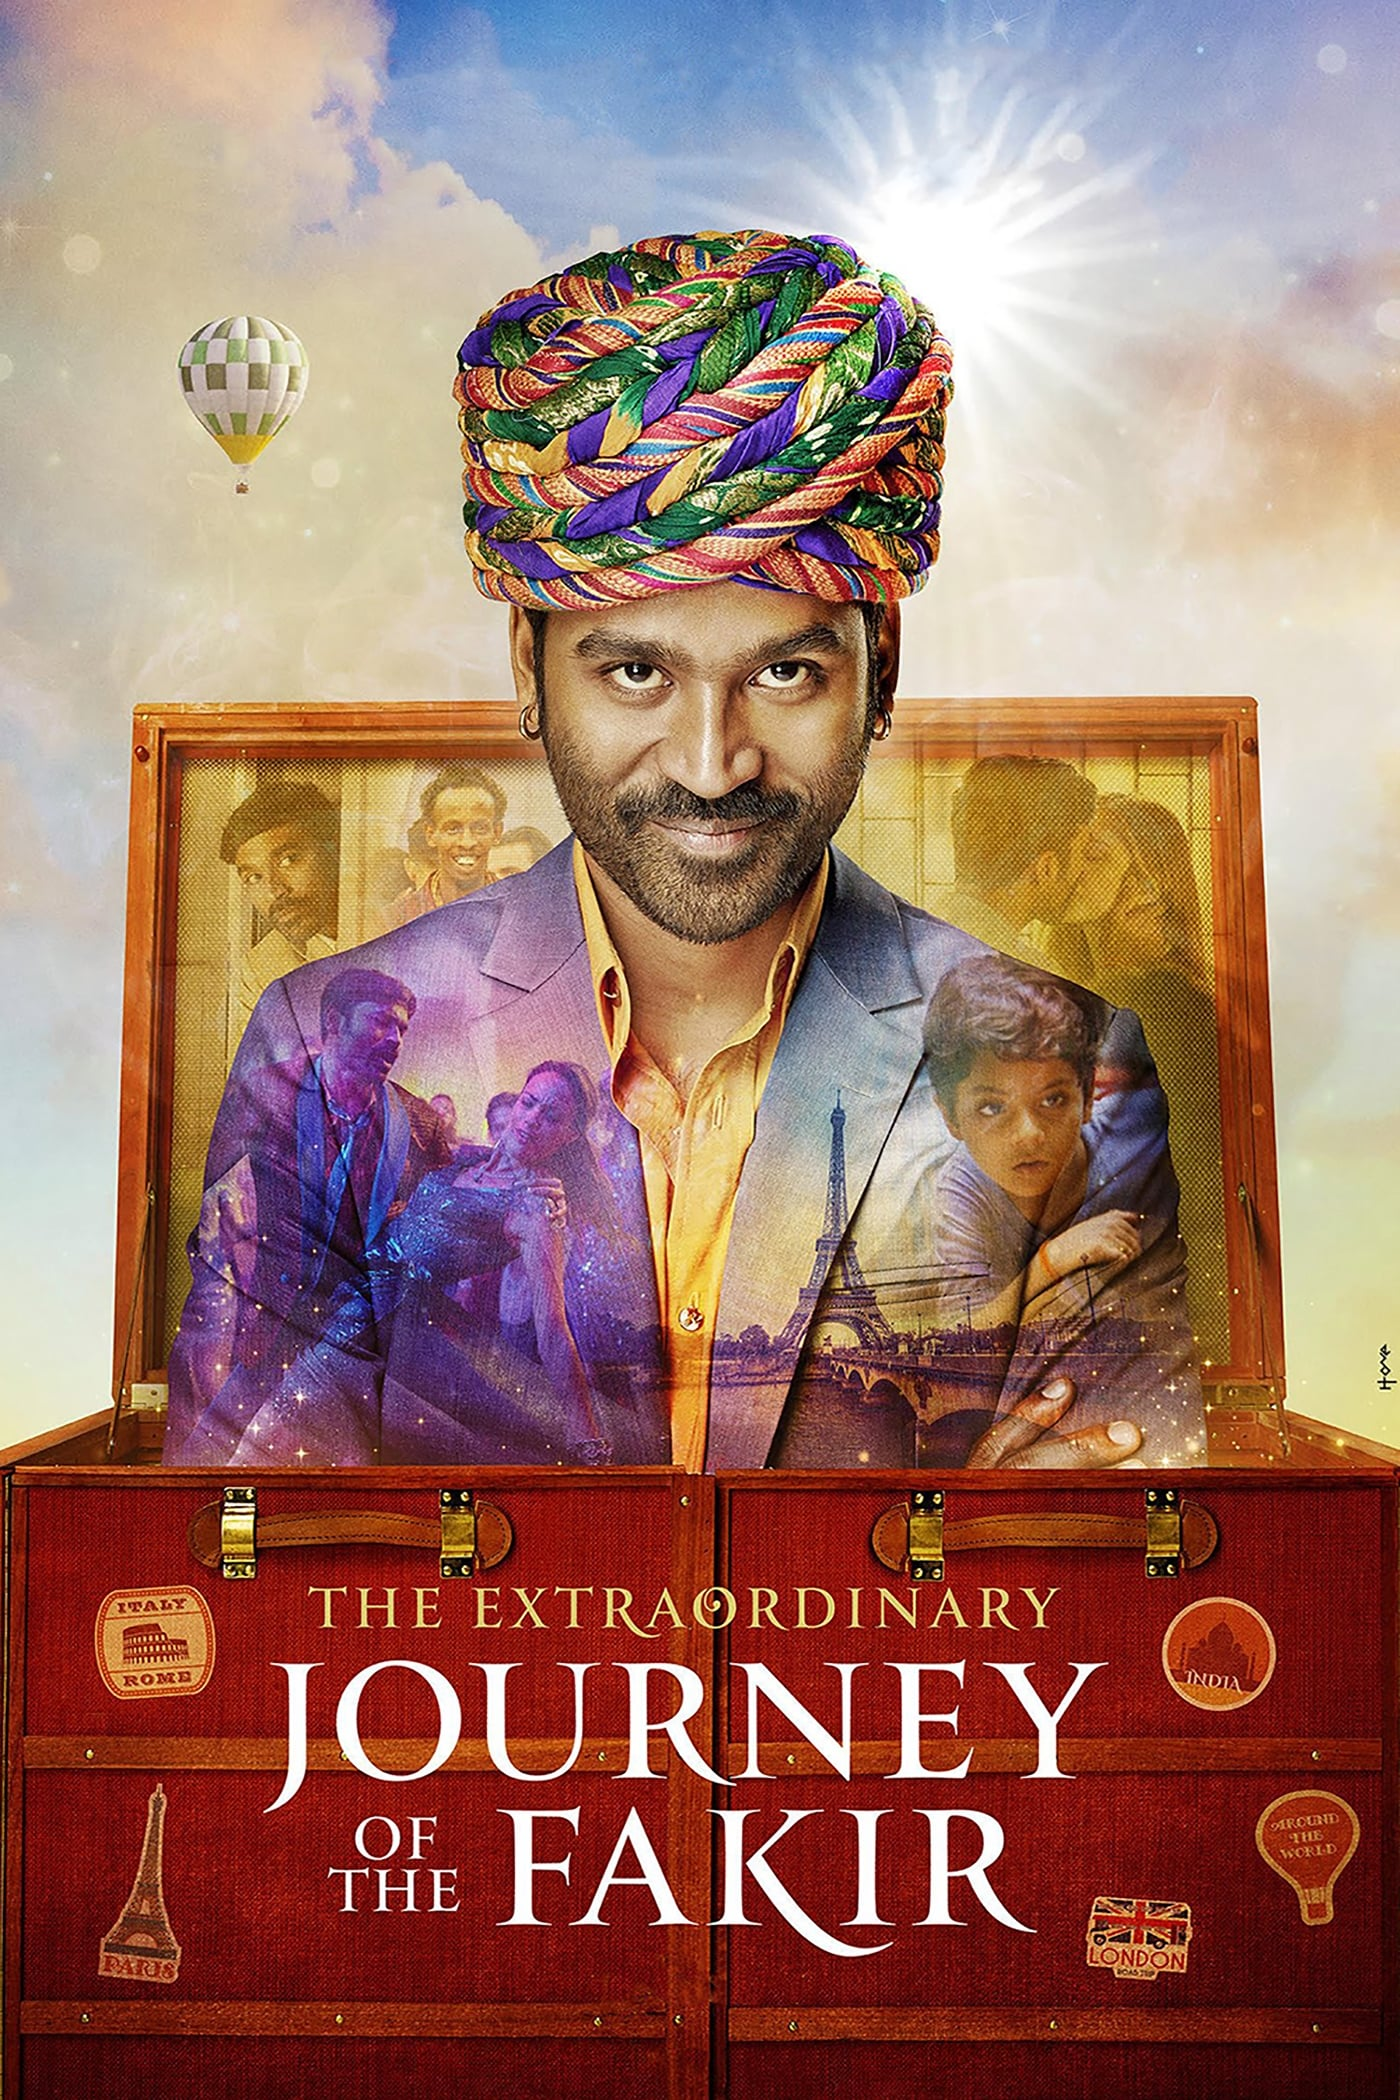 image for The Extraordinary Journey of the Fakir